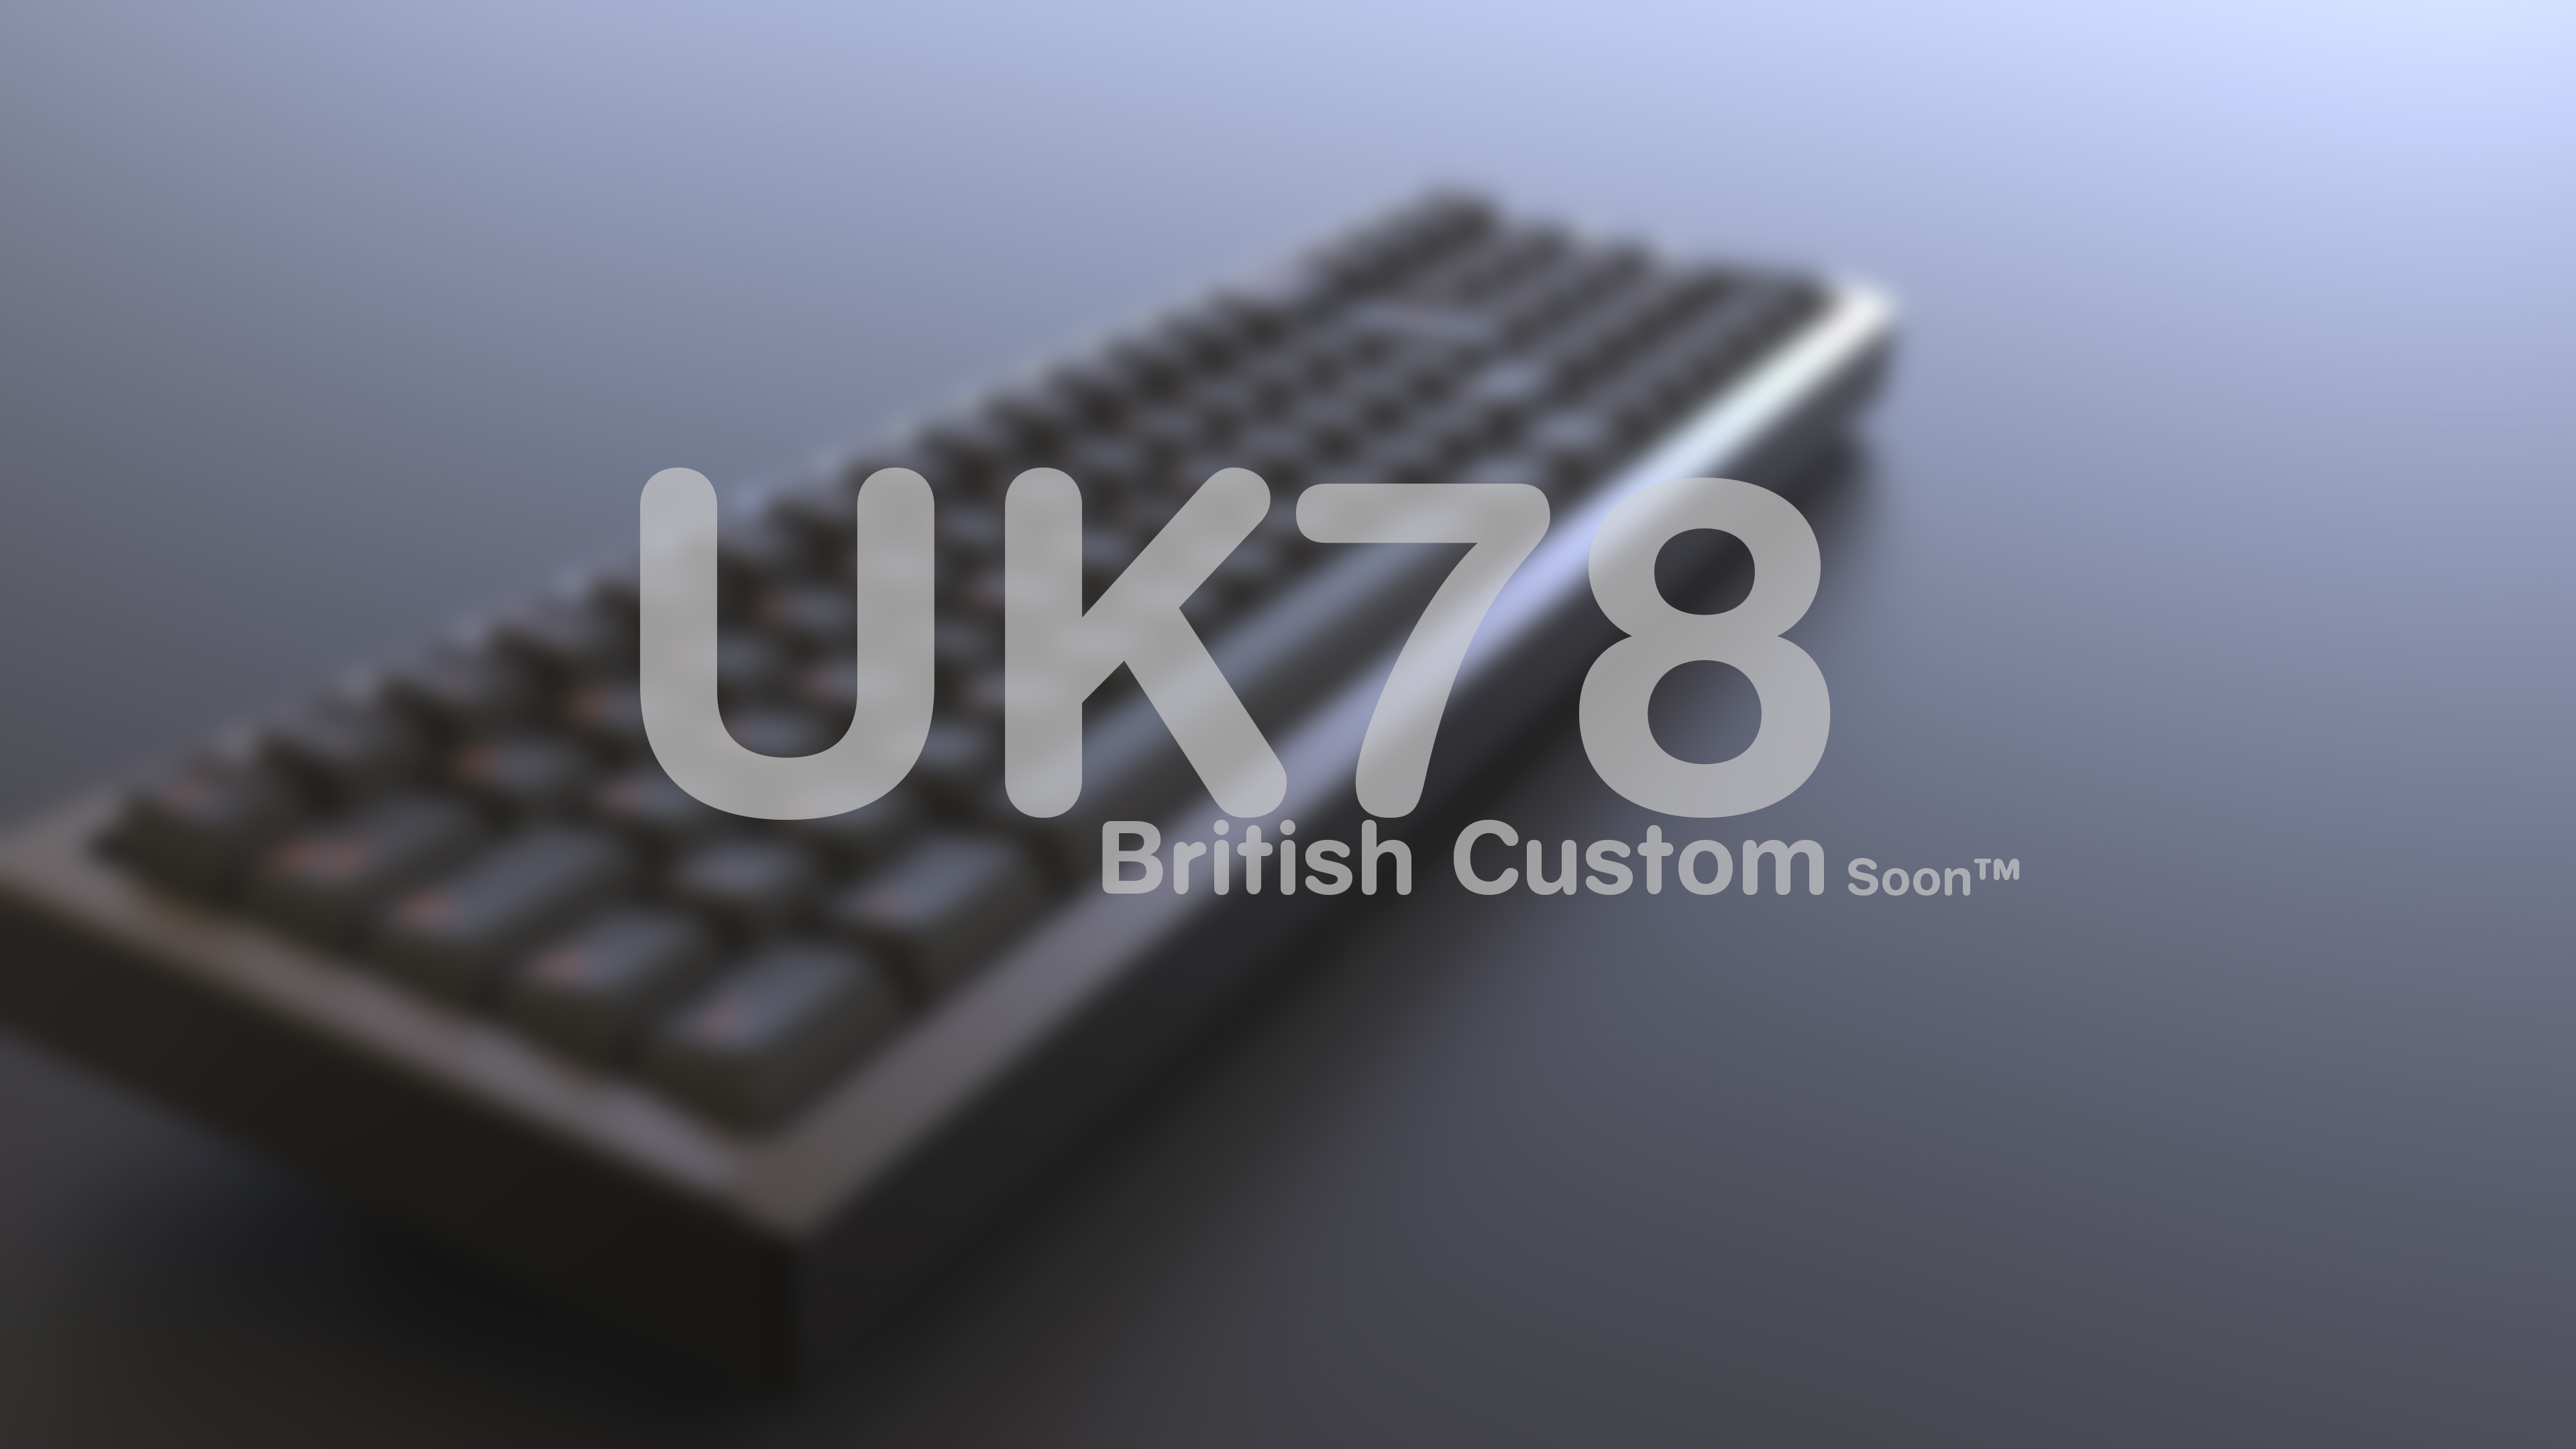 UK78 soon cover.jpg